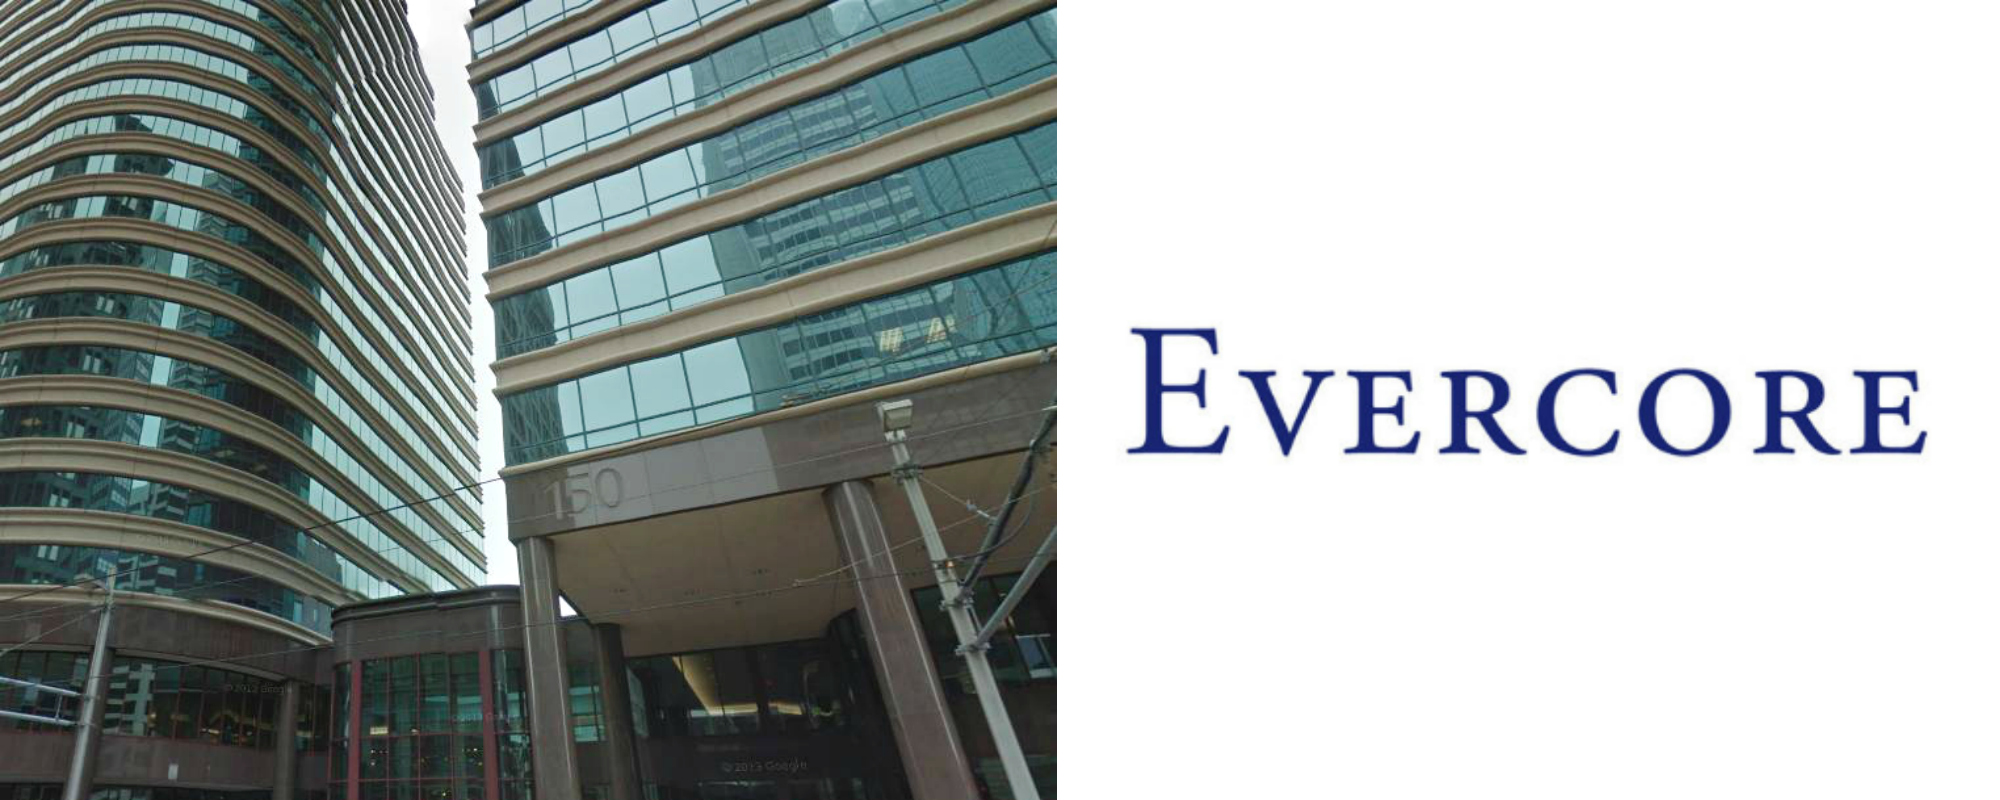 Evercore banner Most Powerful M&A Firms in the world best upslide